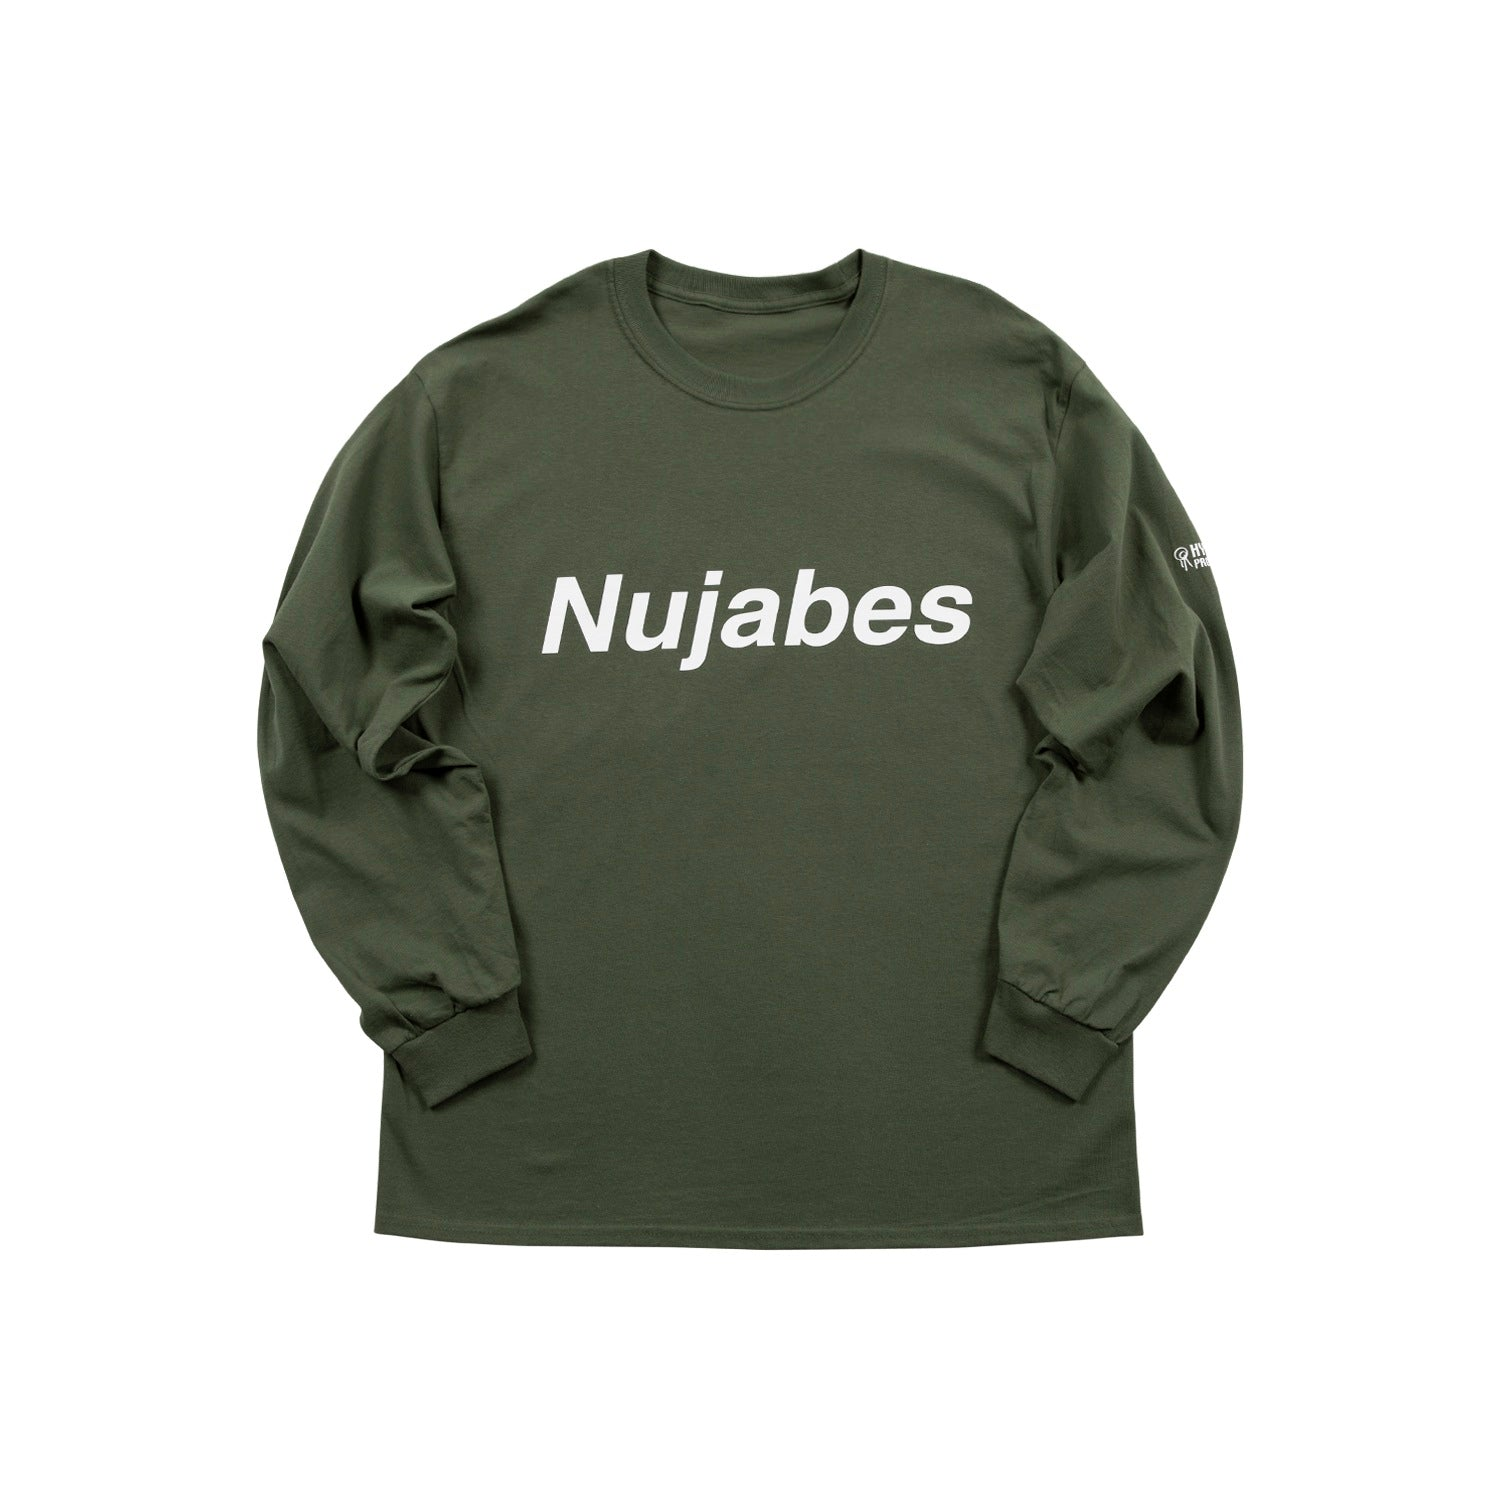 Nujabes Long Sleeve - Moss Green